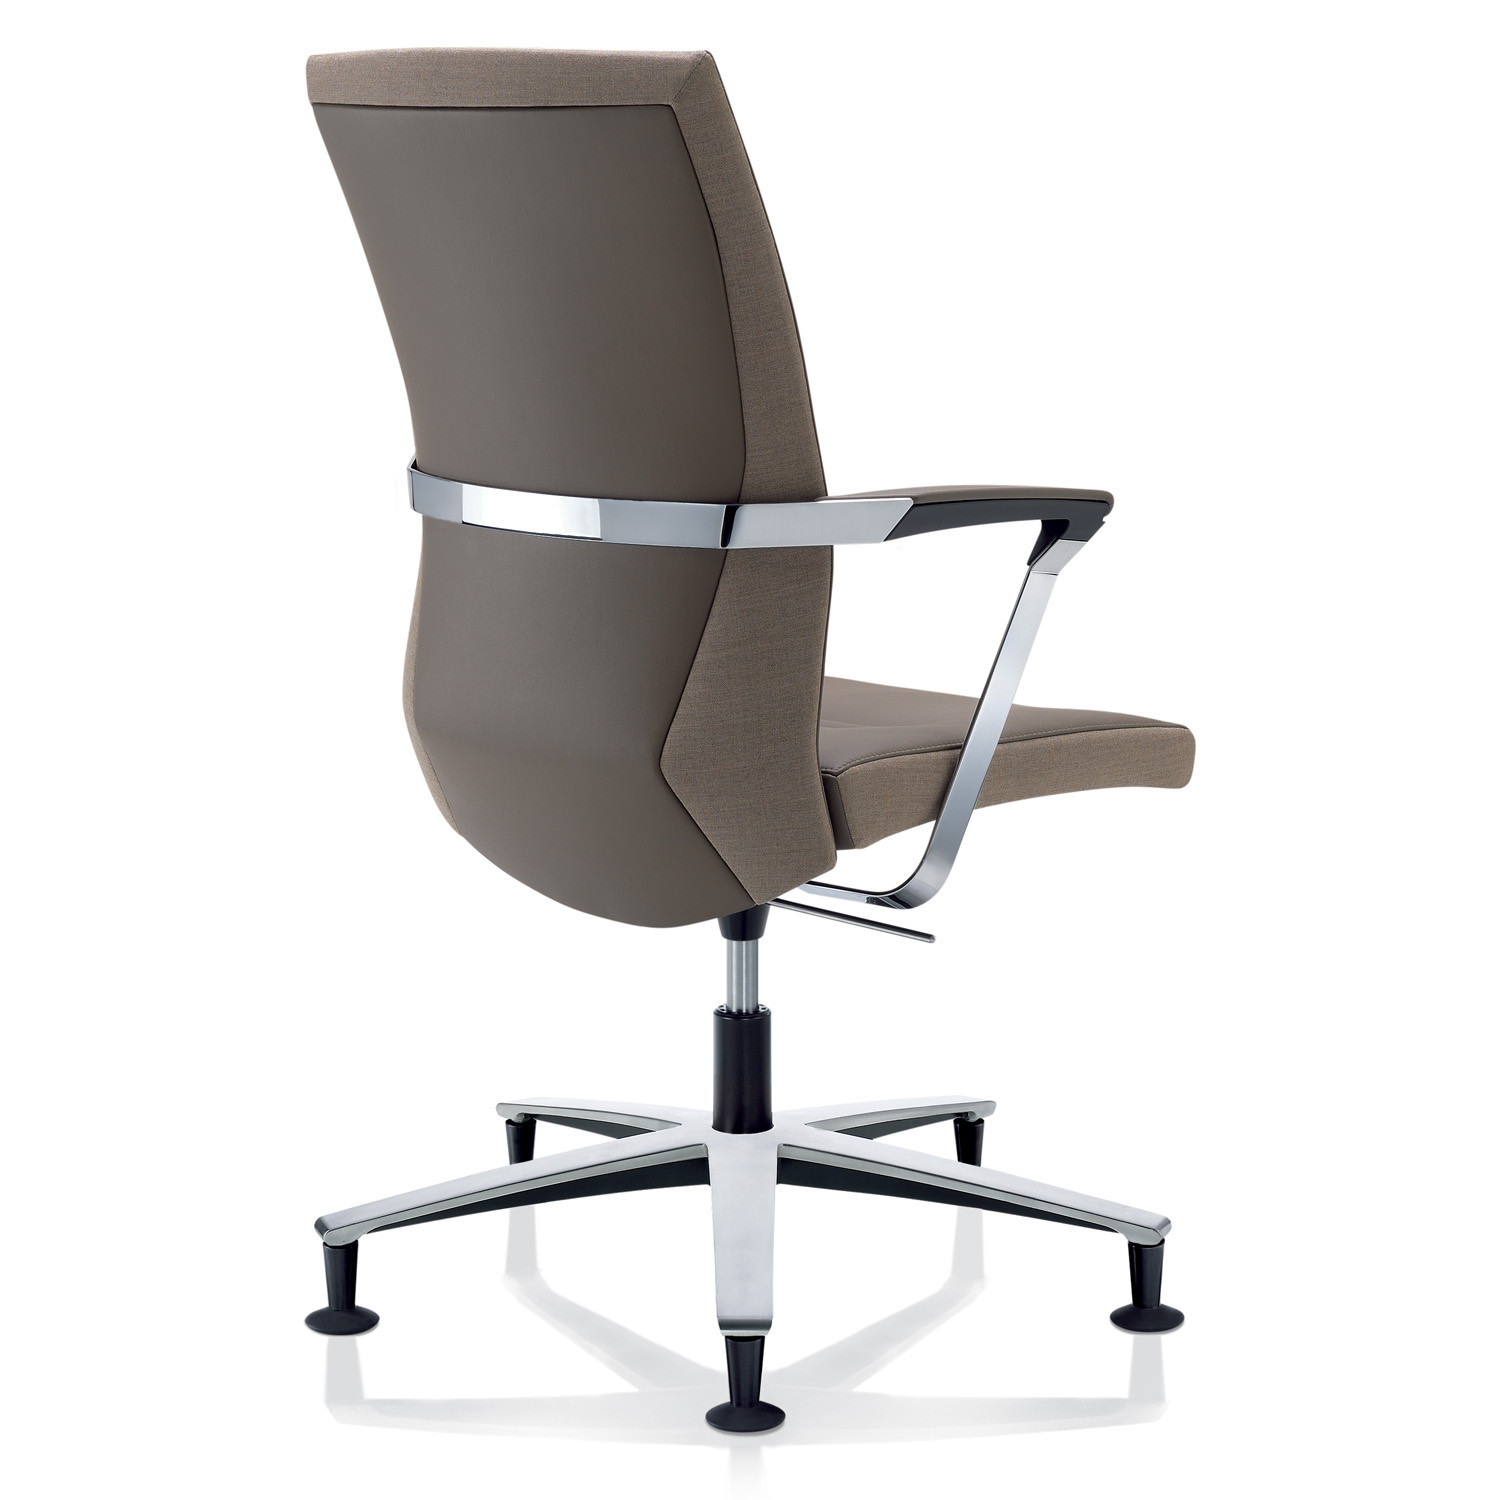 DucaRE Task Chair by Zuco